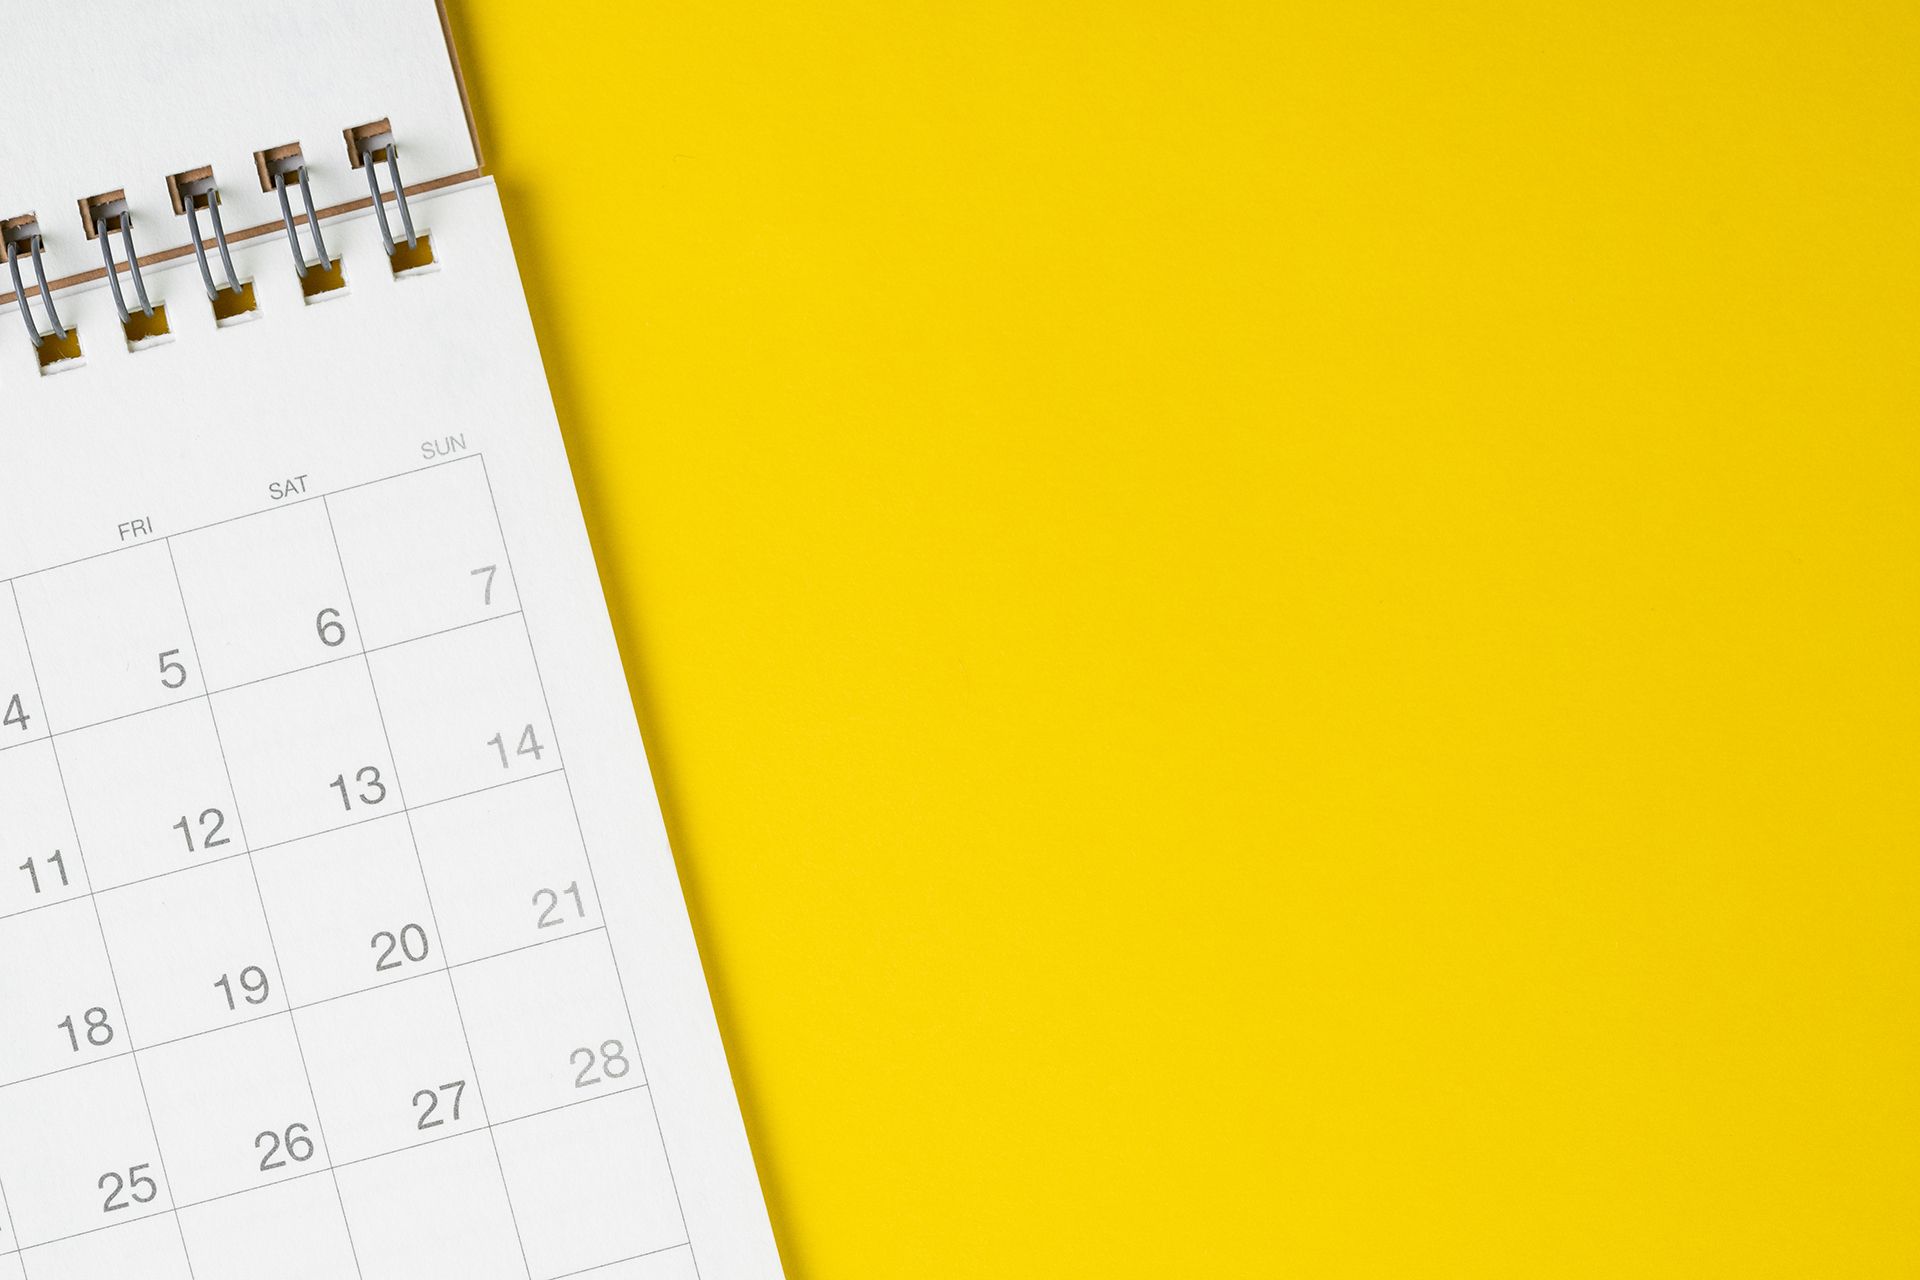 White clean calendar on solid yellow background